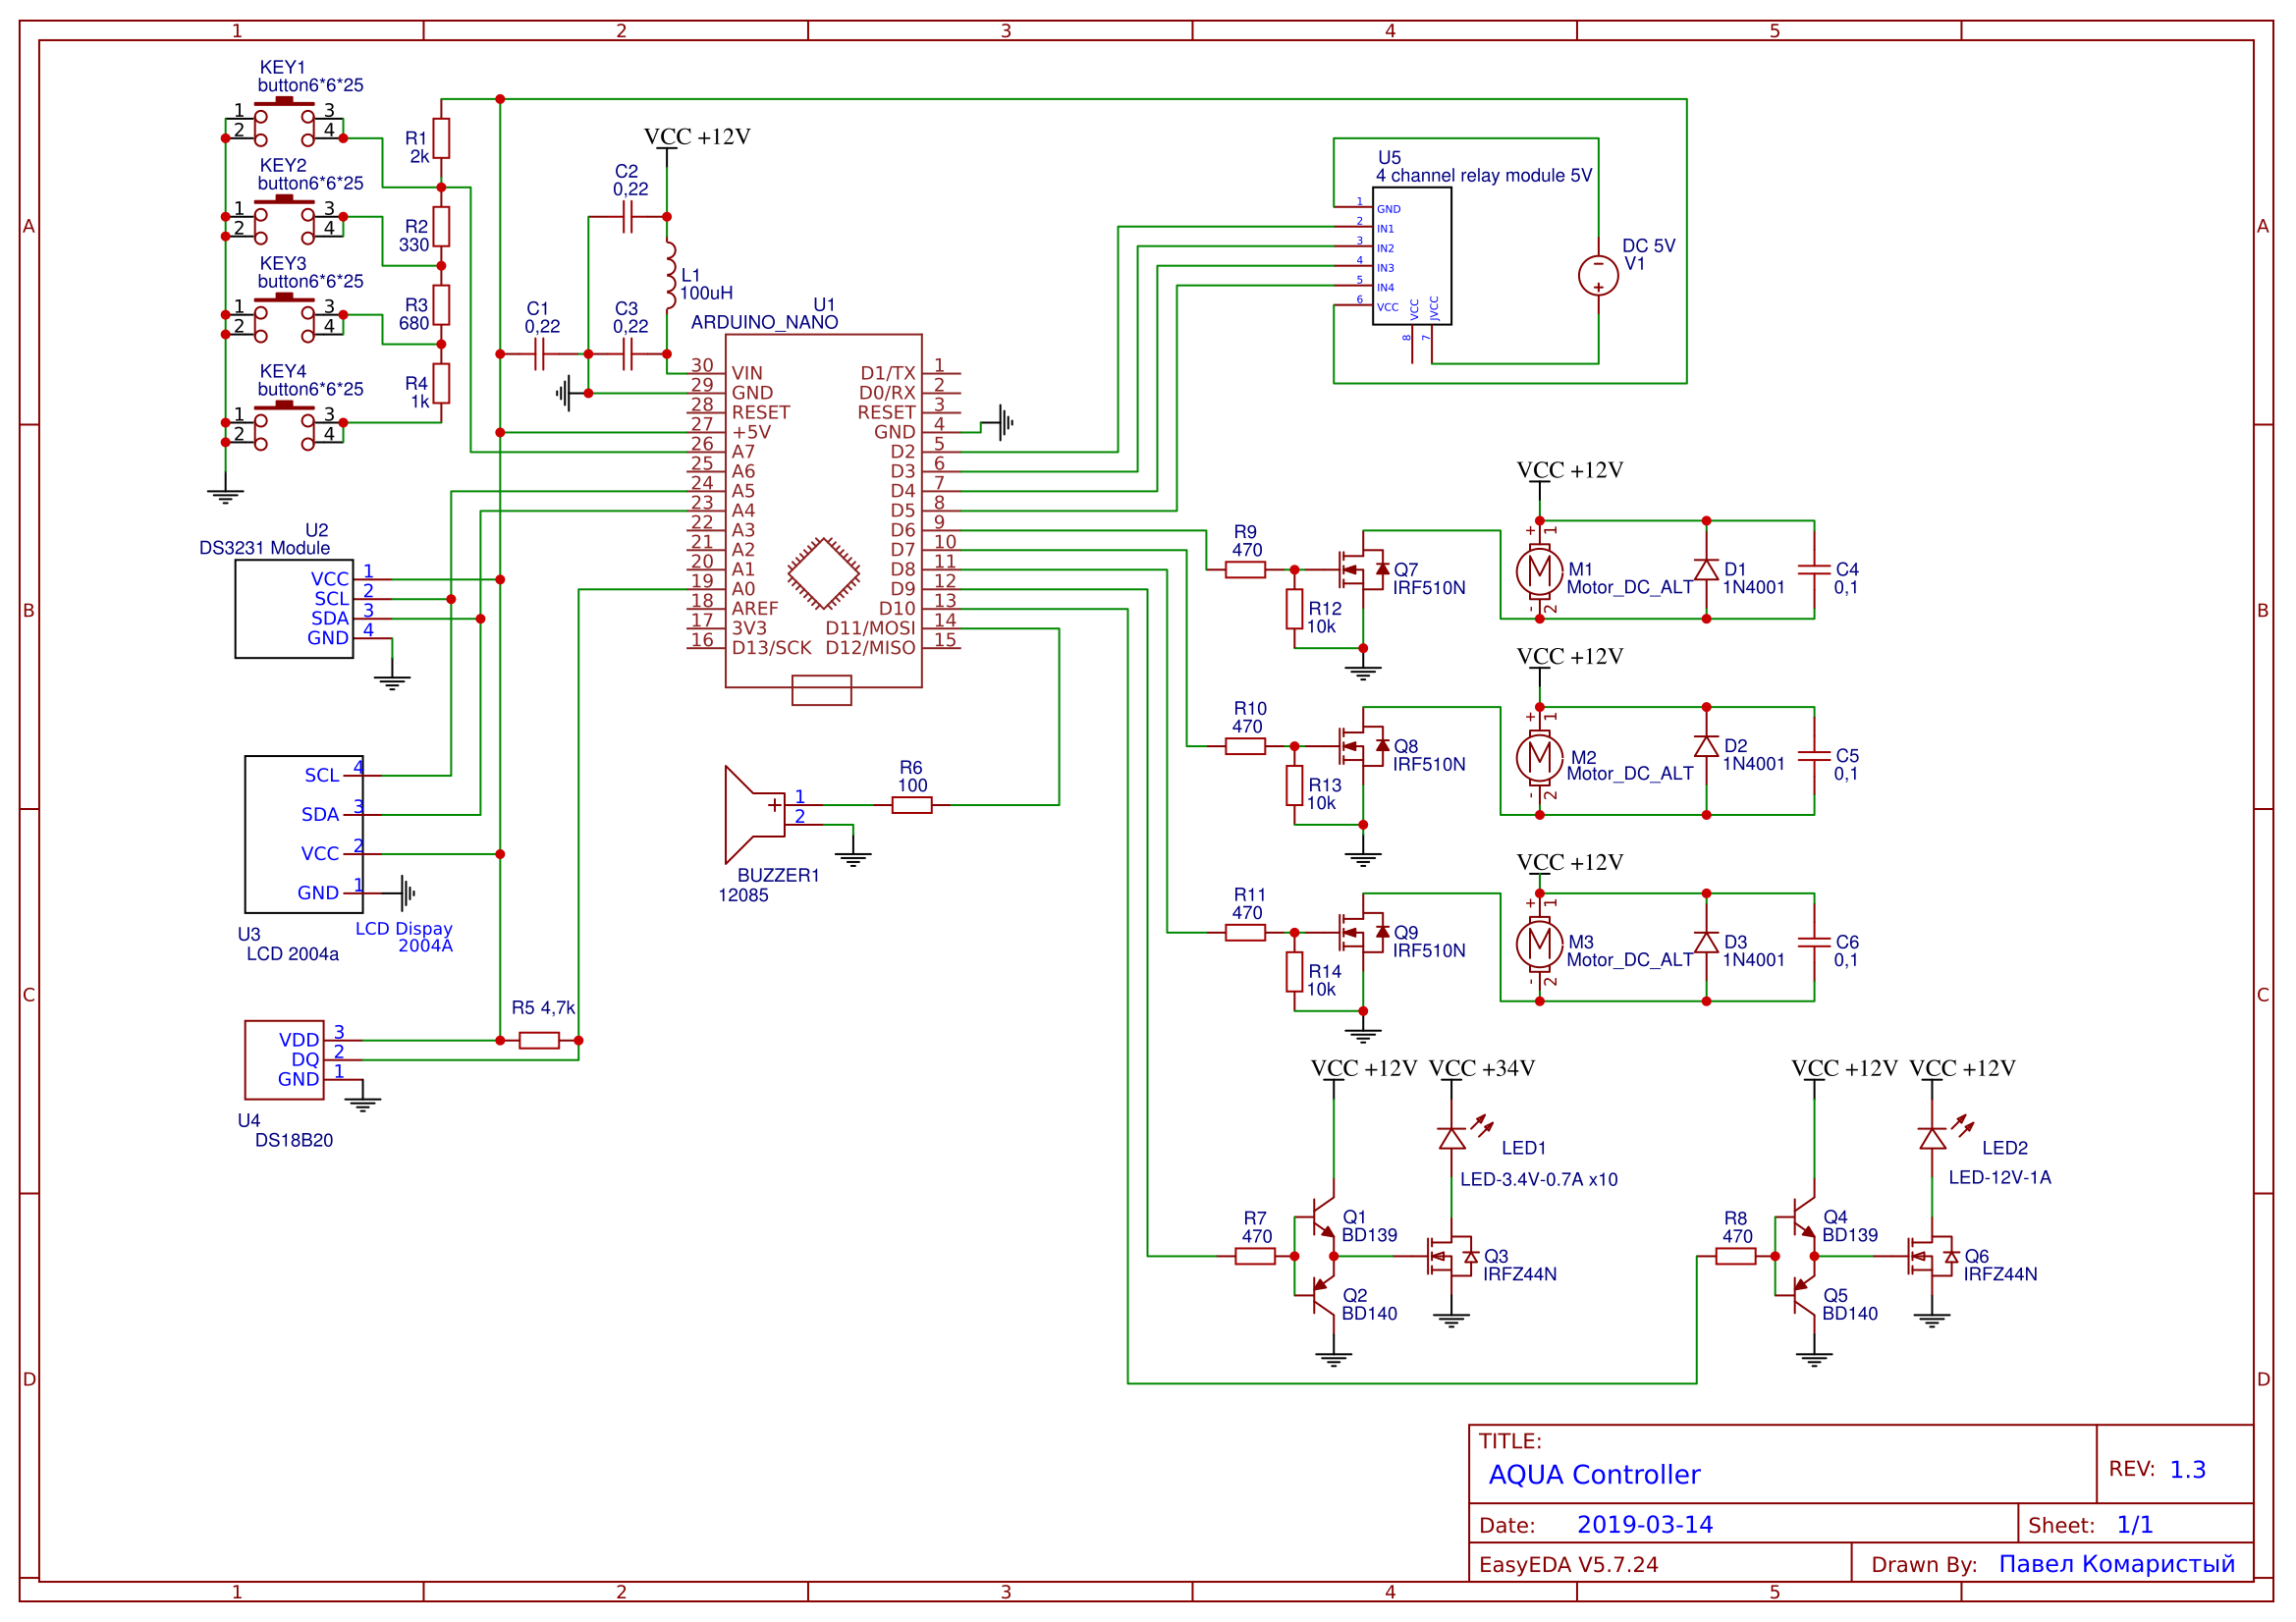 Schematic AQUAController